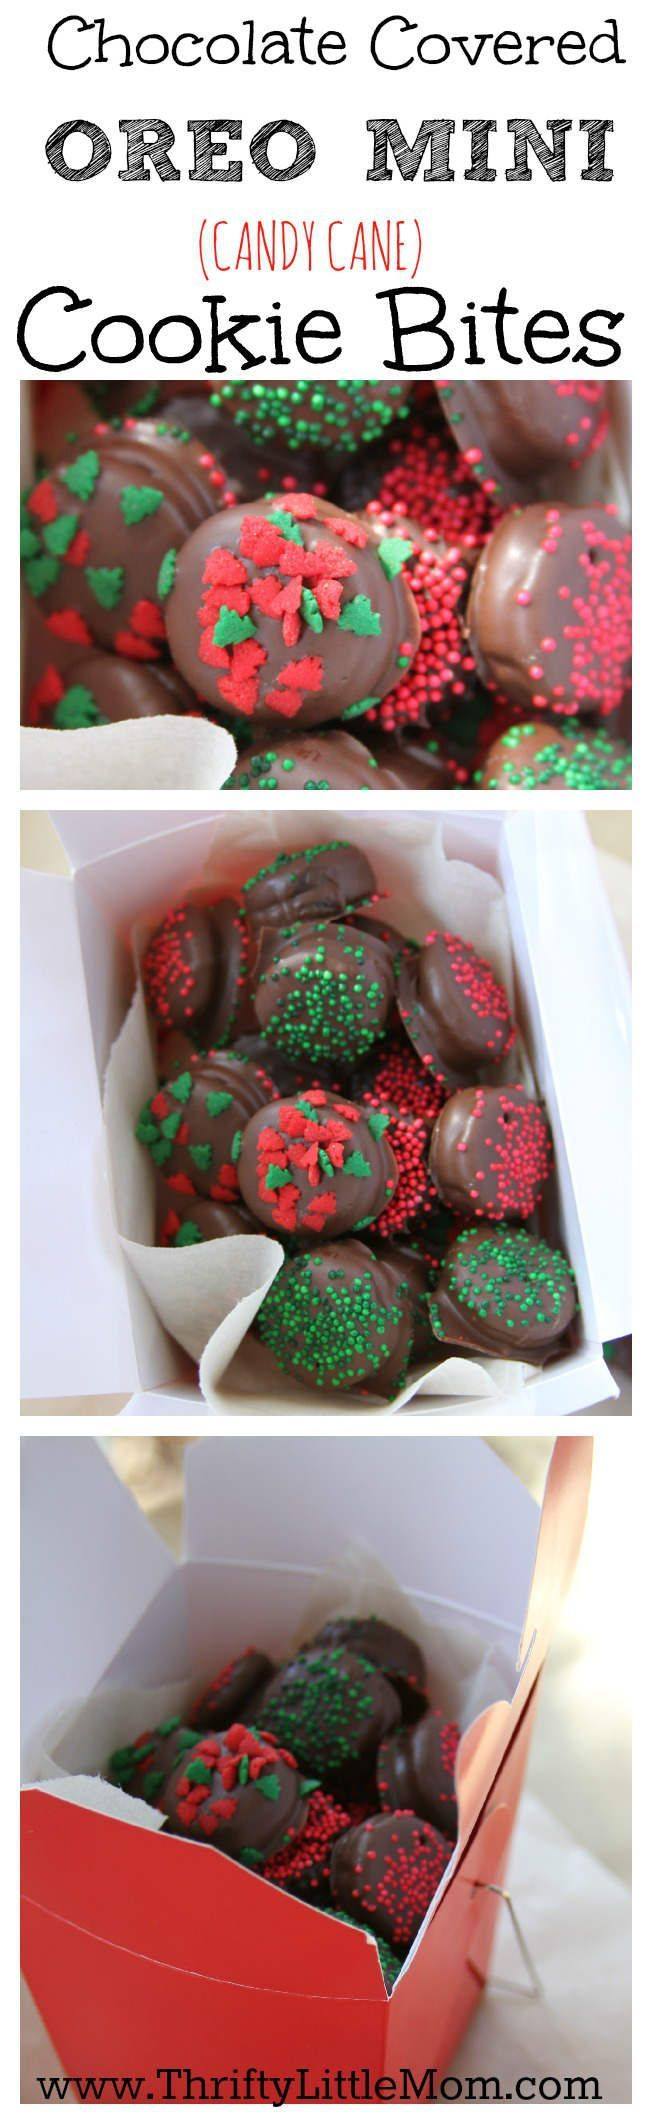 Want to make a homemade gift that's easy, delicious and you can do with your kids? See this tutorial on making chocolate covered OREO MINI Cookie Bites. Chocolate provided by Chocoley.